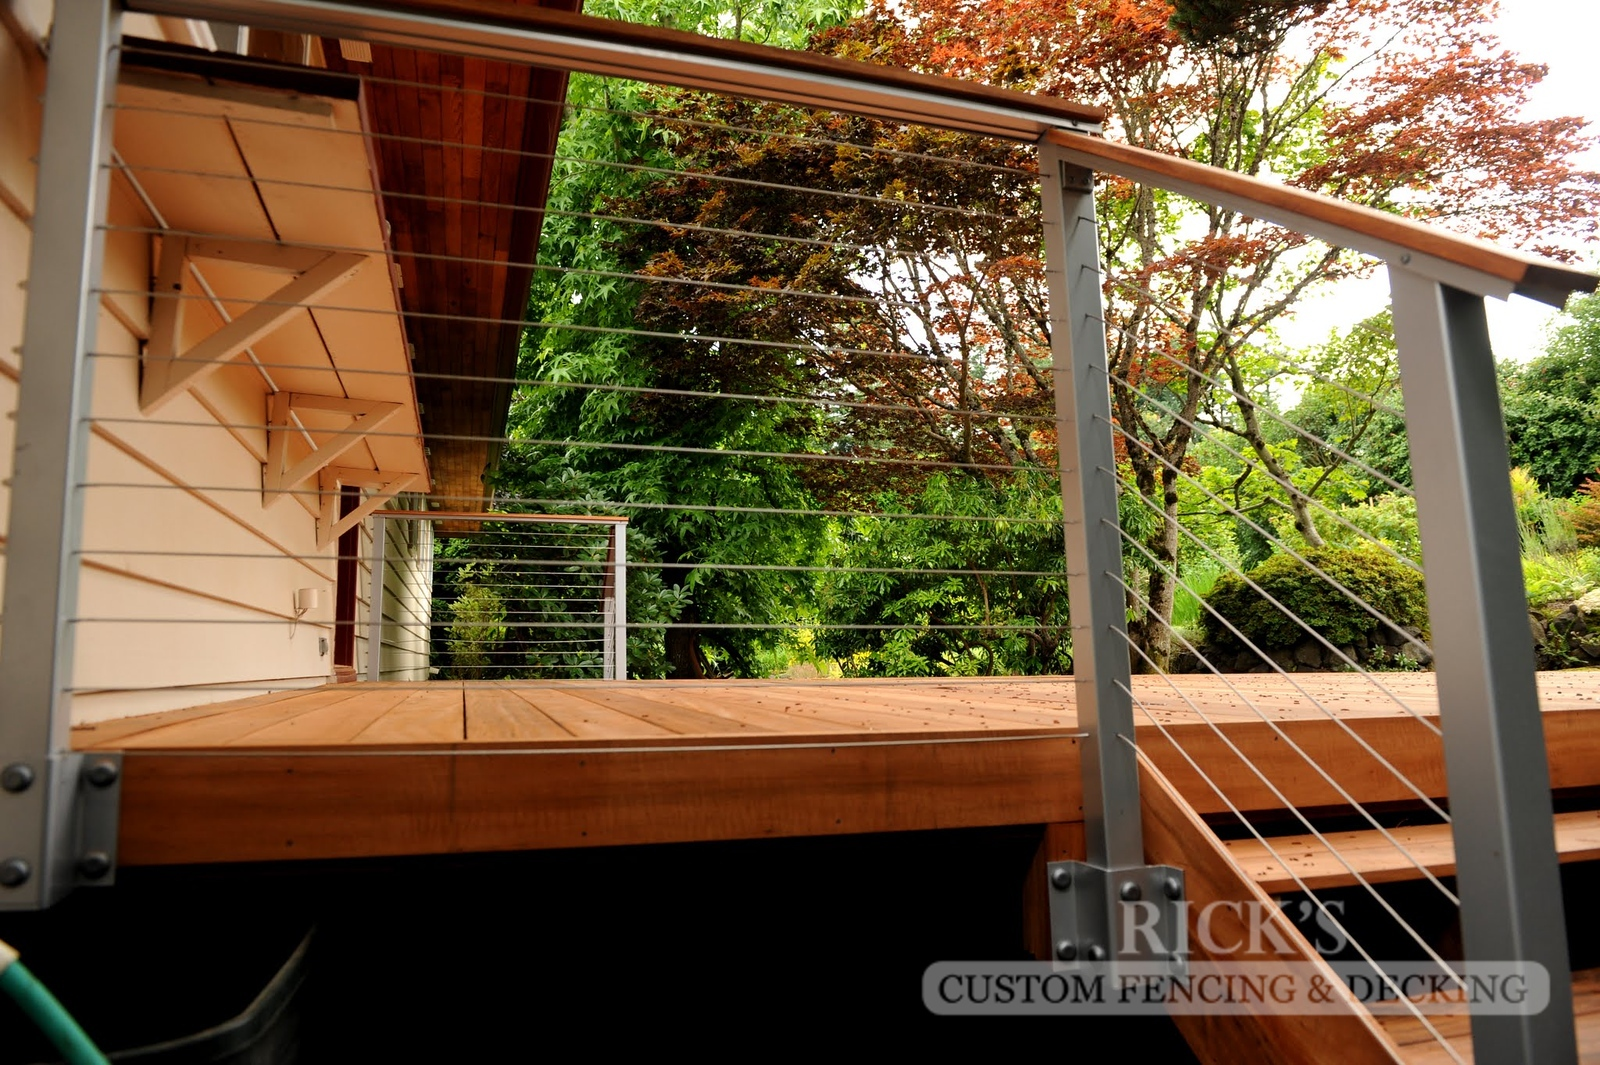 1107 - TigerWood Hardwood Decking